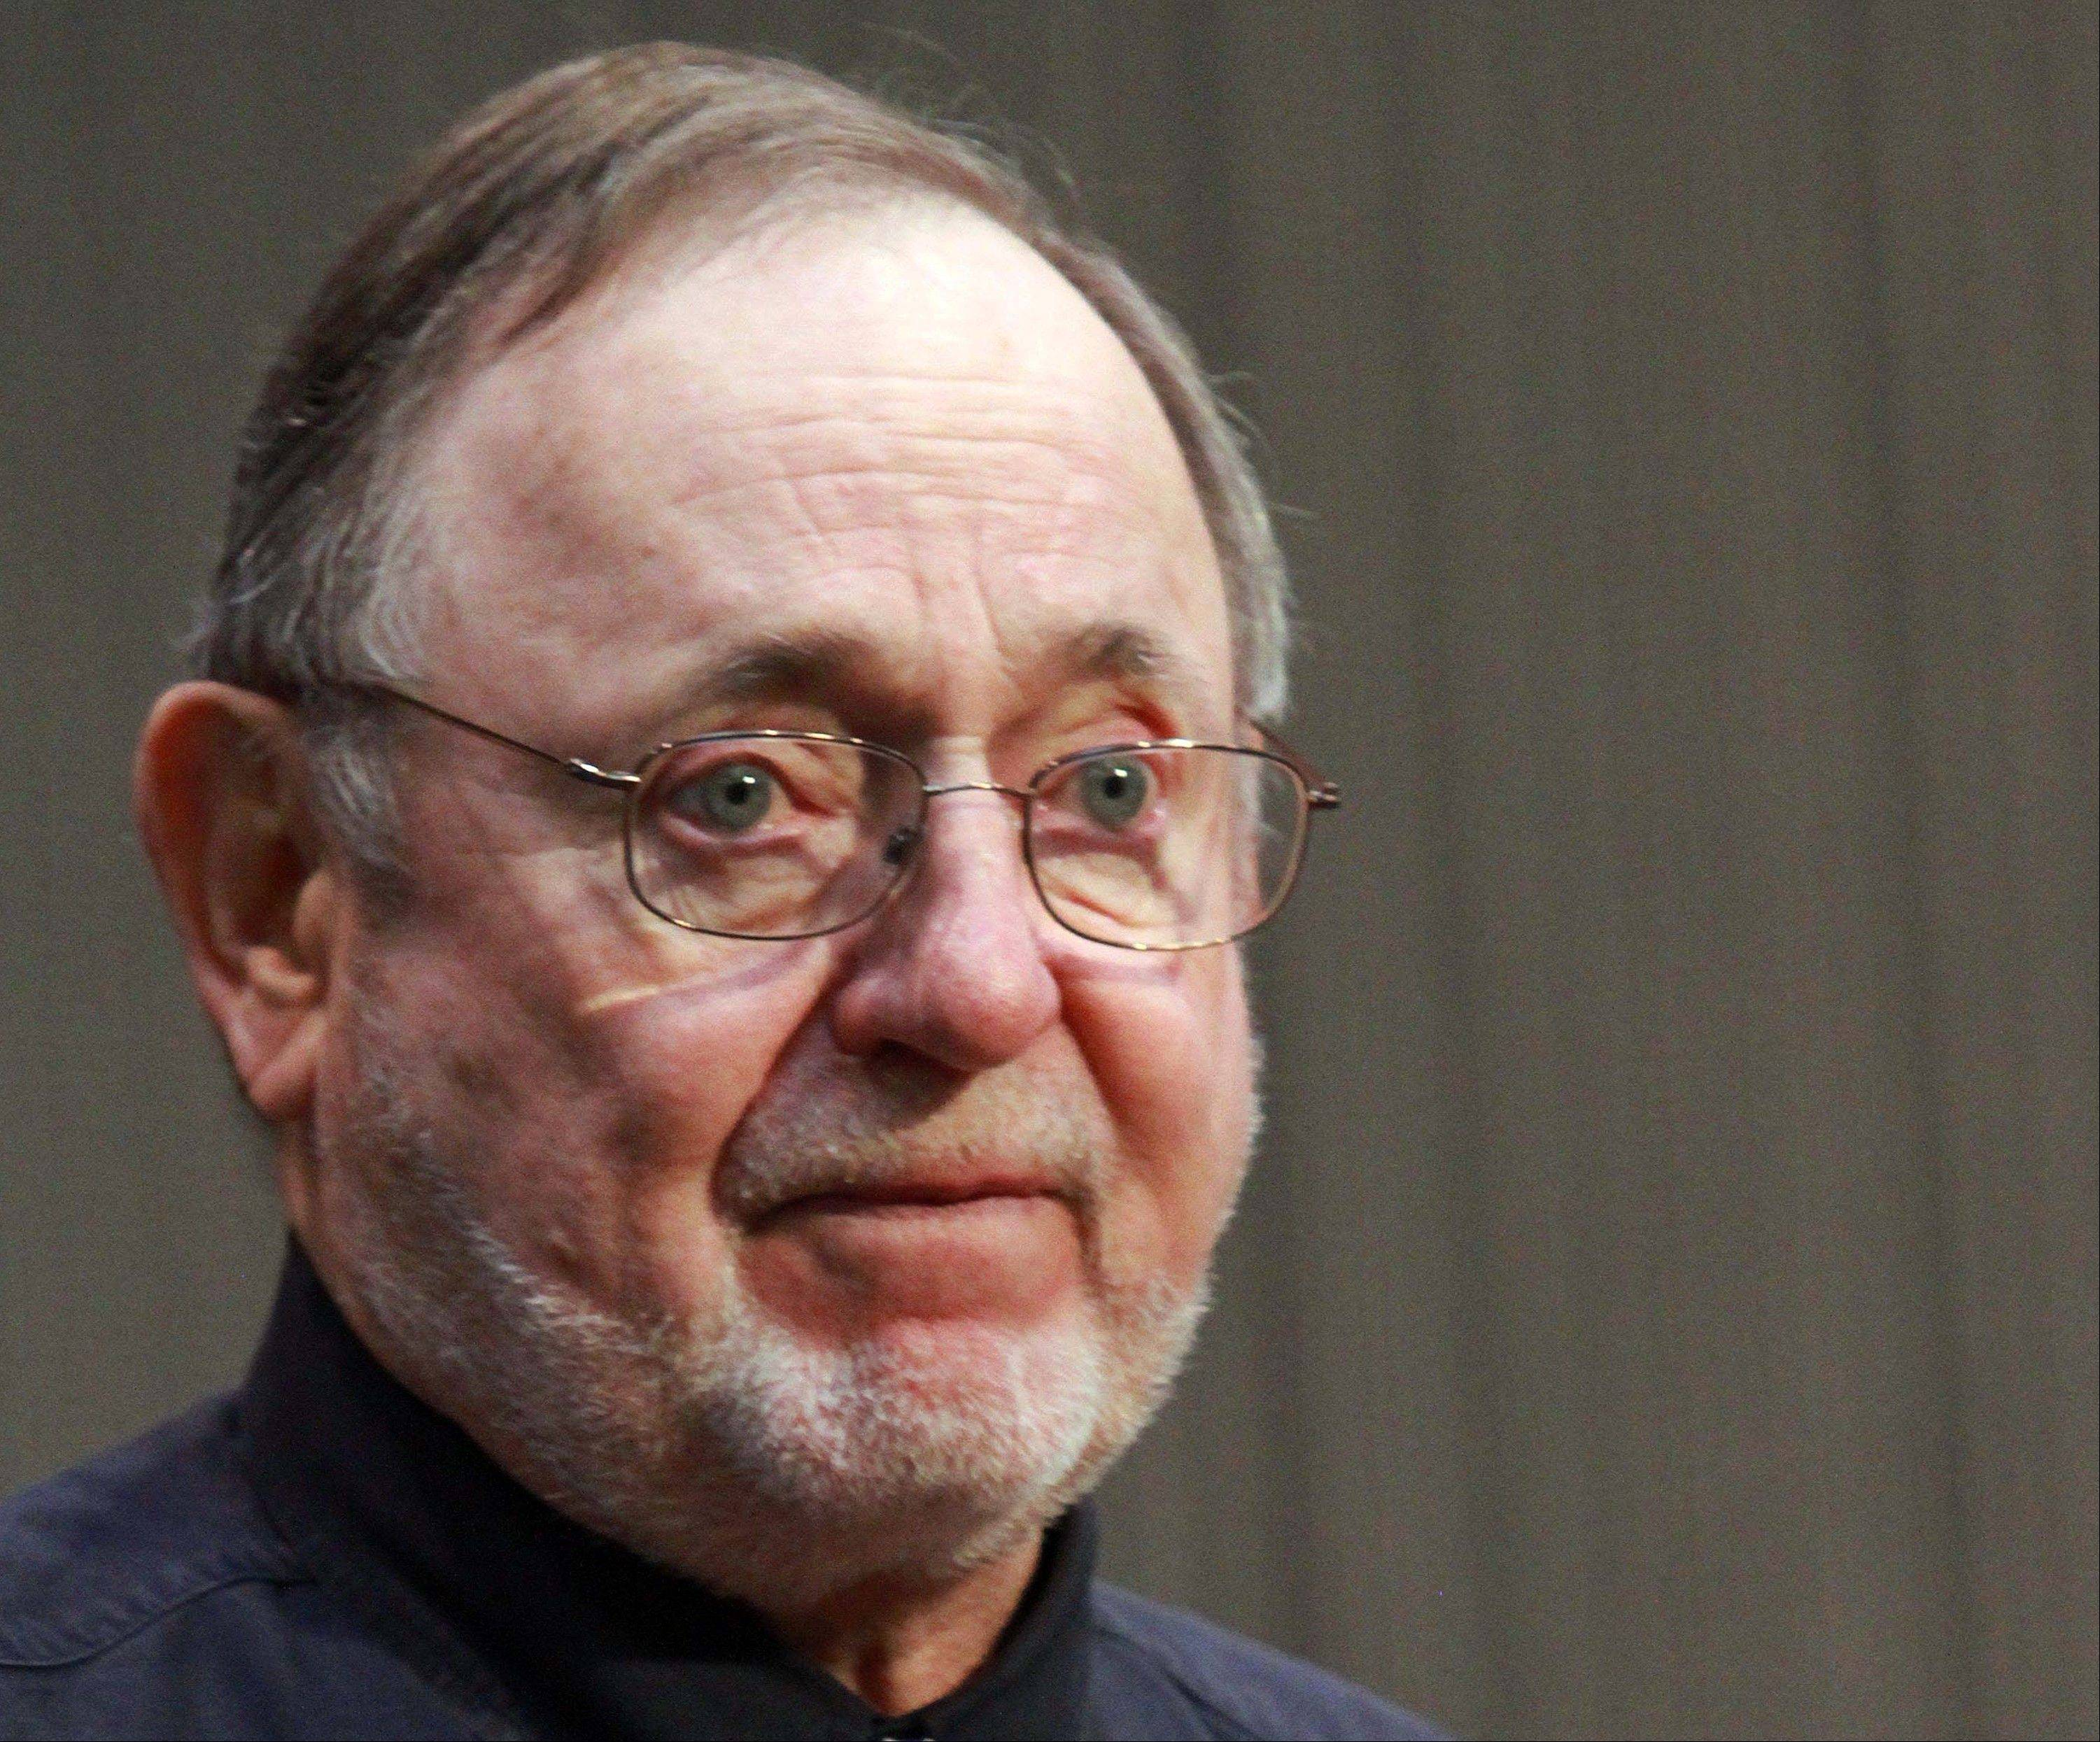 Associated Press/Oct. 20, 2011Rep. Don Young, a Republican from Alaska, speaks in Anchorage.